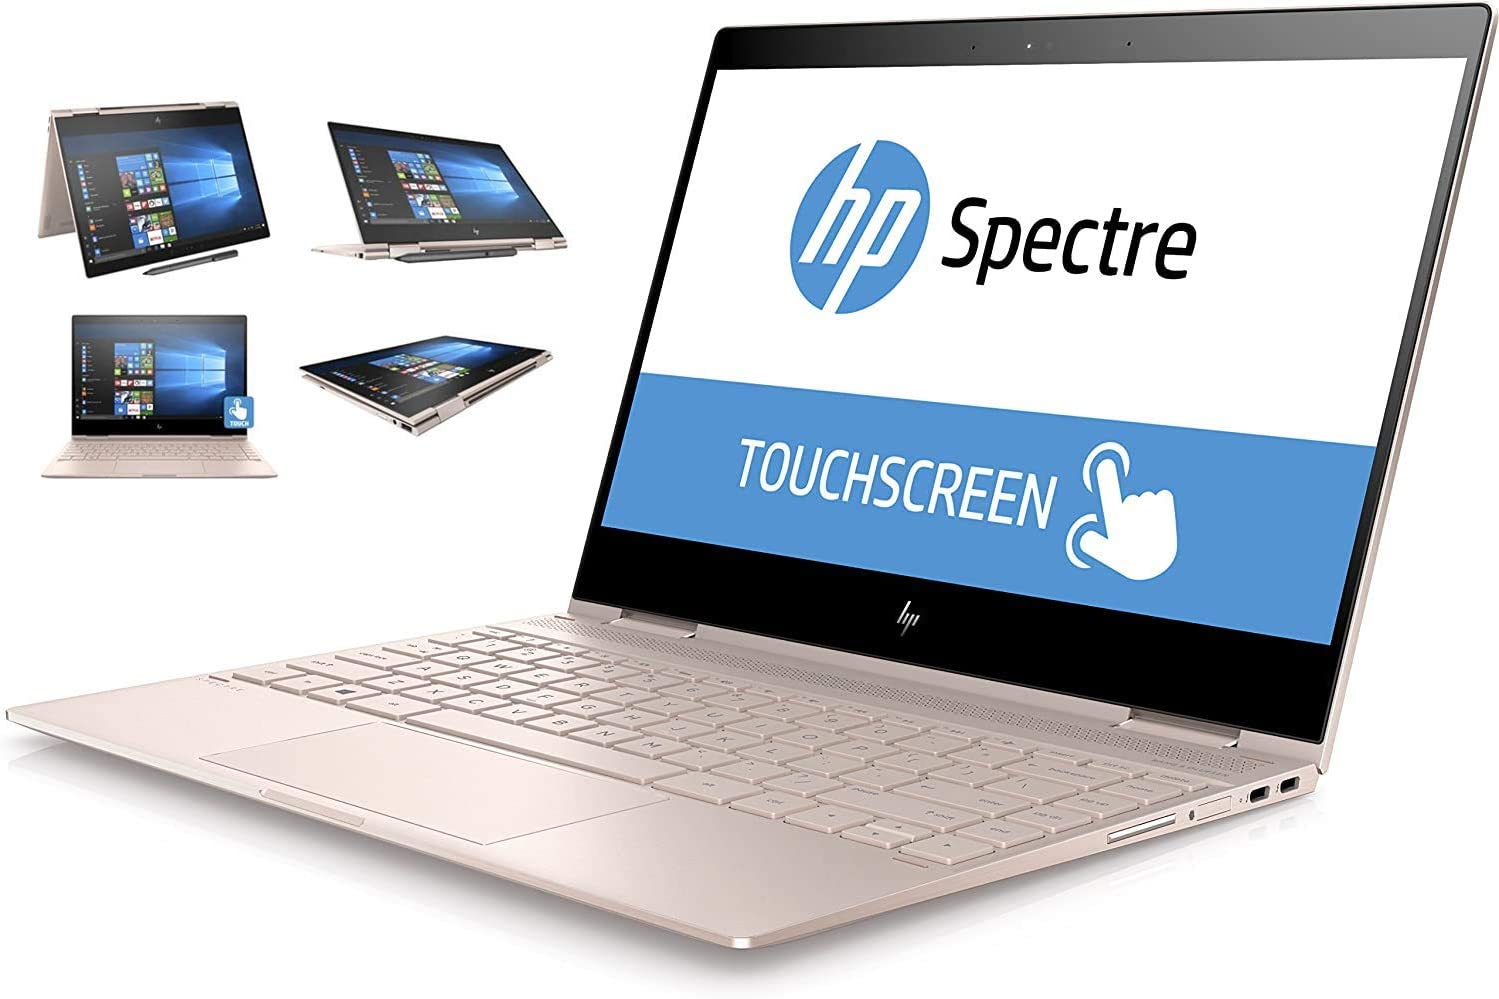 "HP Spectre x360 13t Ultra Light Convertible 2-in-1 Laptop/Tablet (Intel 8th gen Quad Core Processor, 16GB RAM, 512GB SSD, 13.3"" FHD (1920x1080) Touch, Active Stylus Pen, Win 10 Pro) Rose Gold"